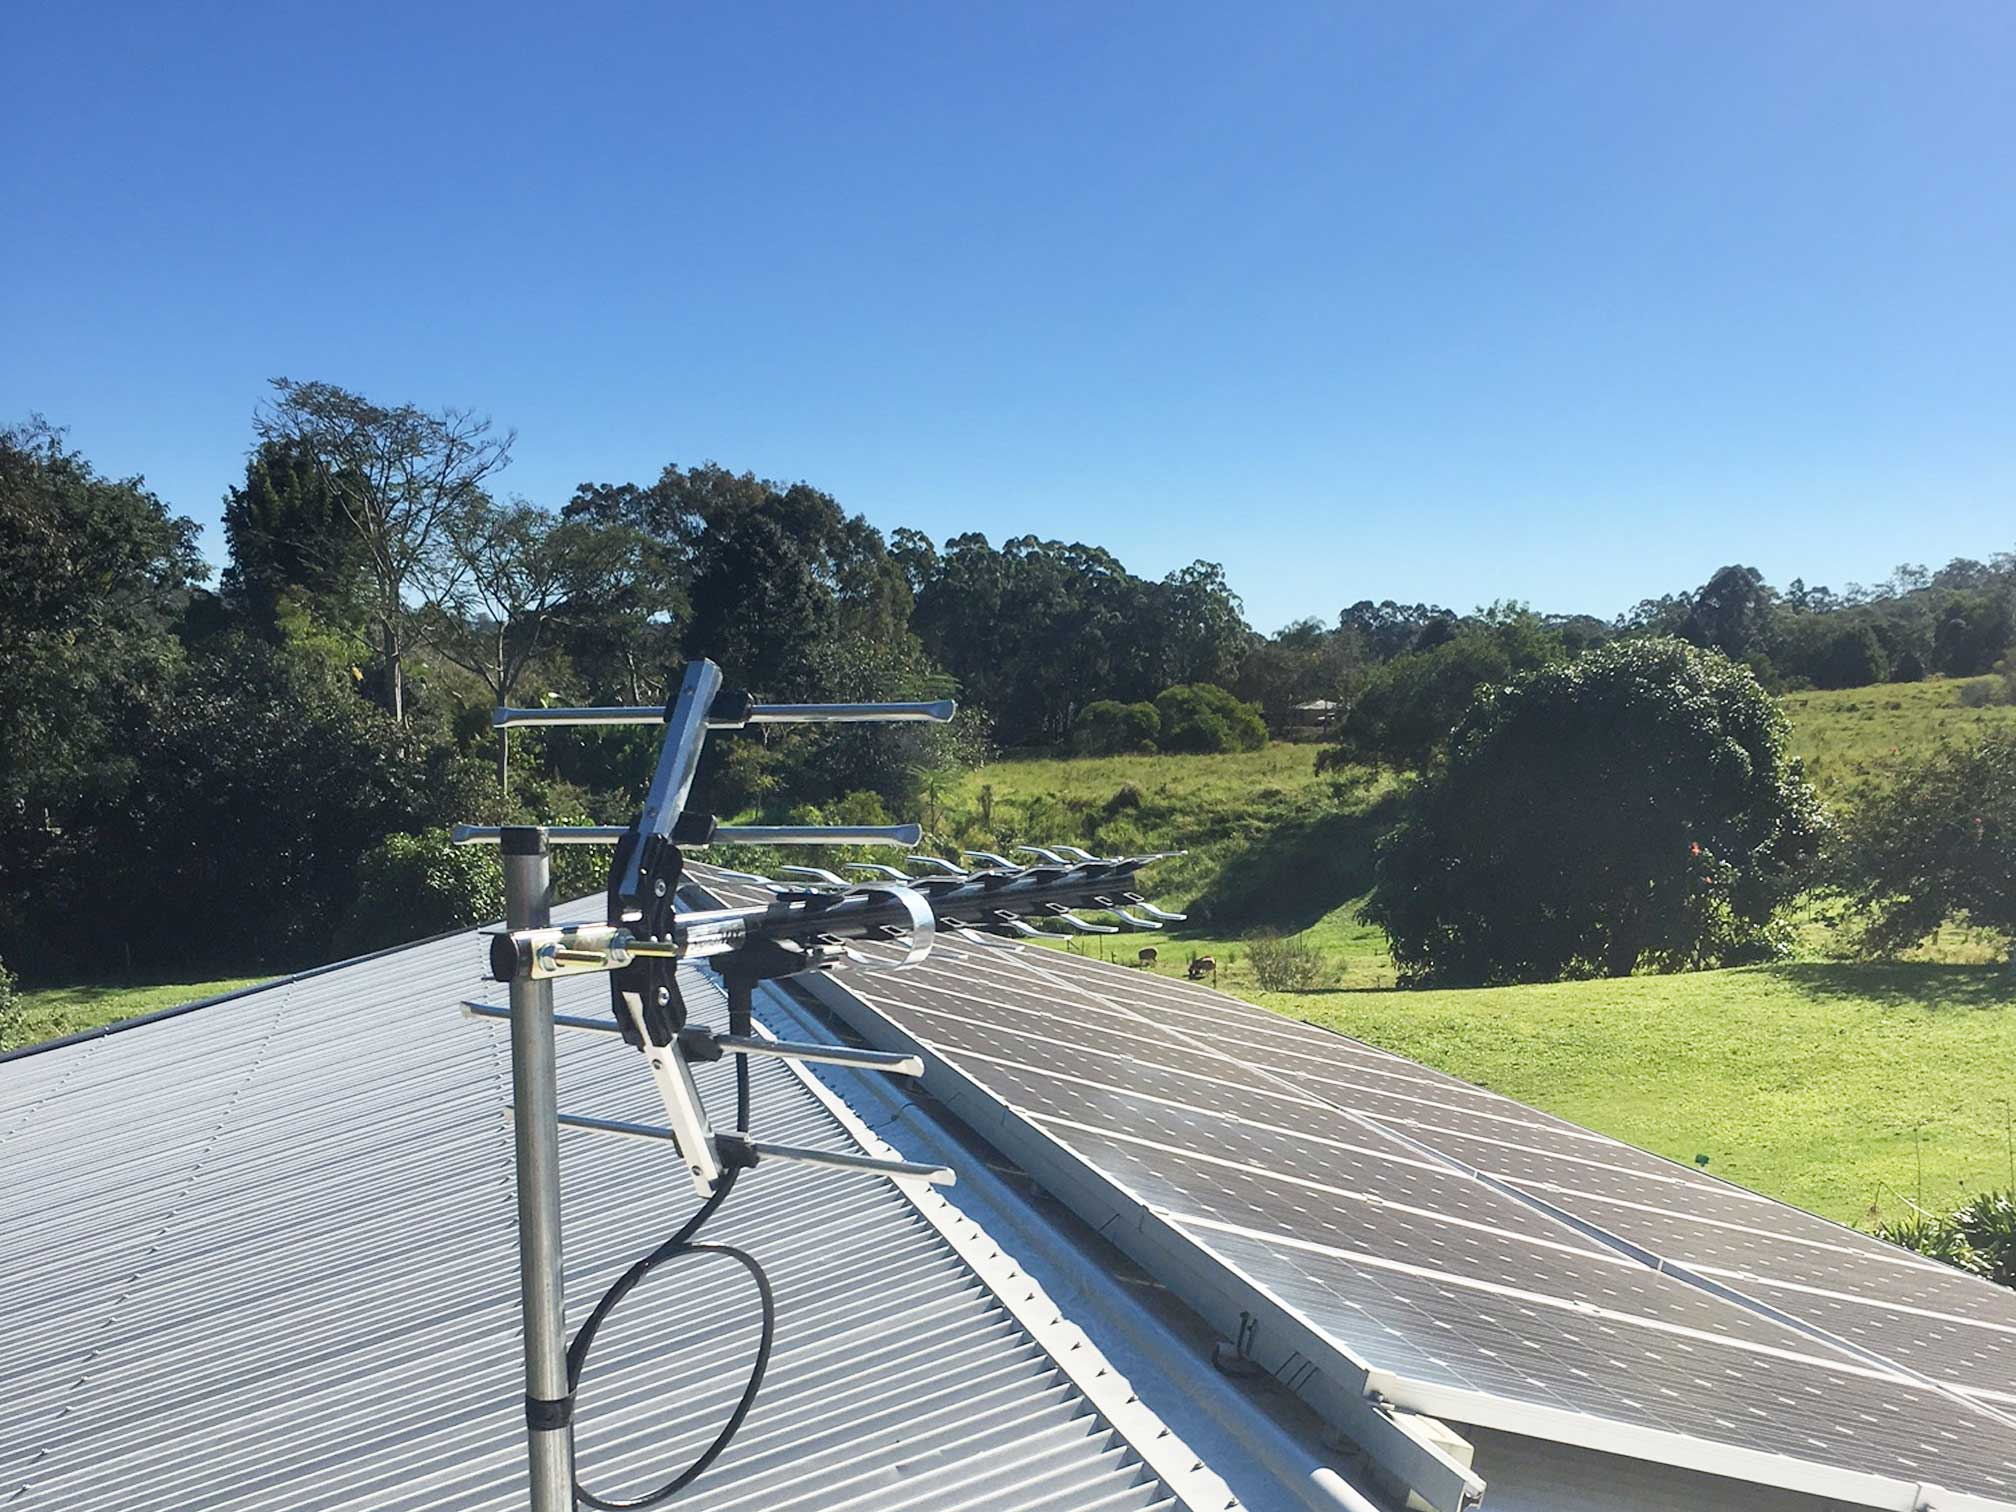 rural-town-country-antenna-installation-1